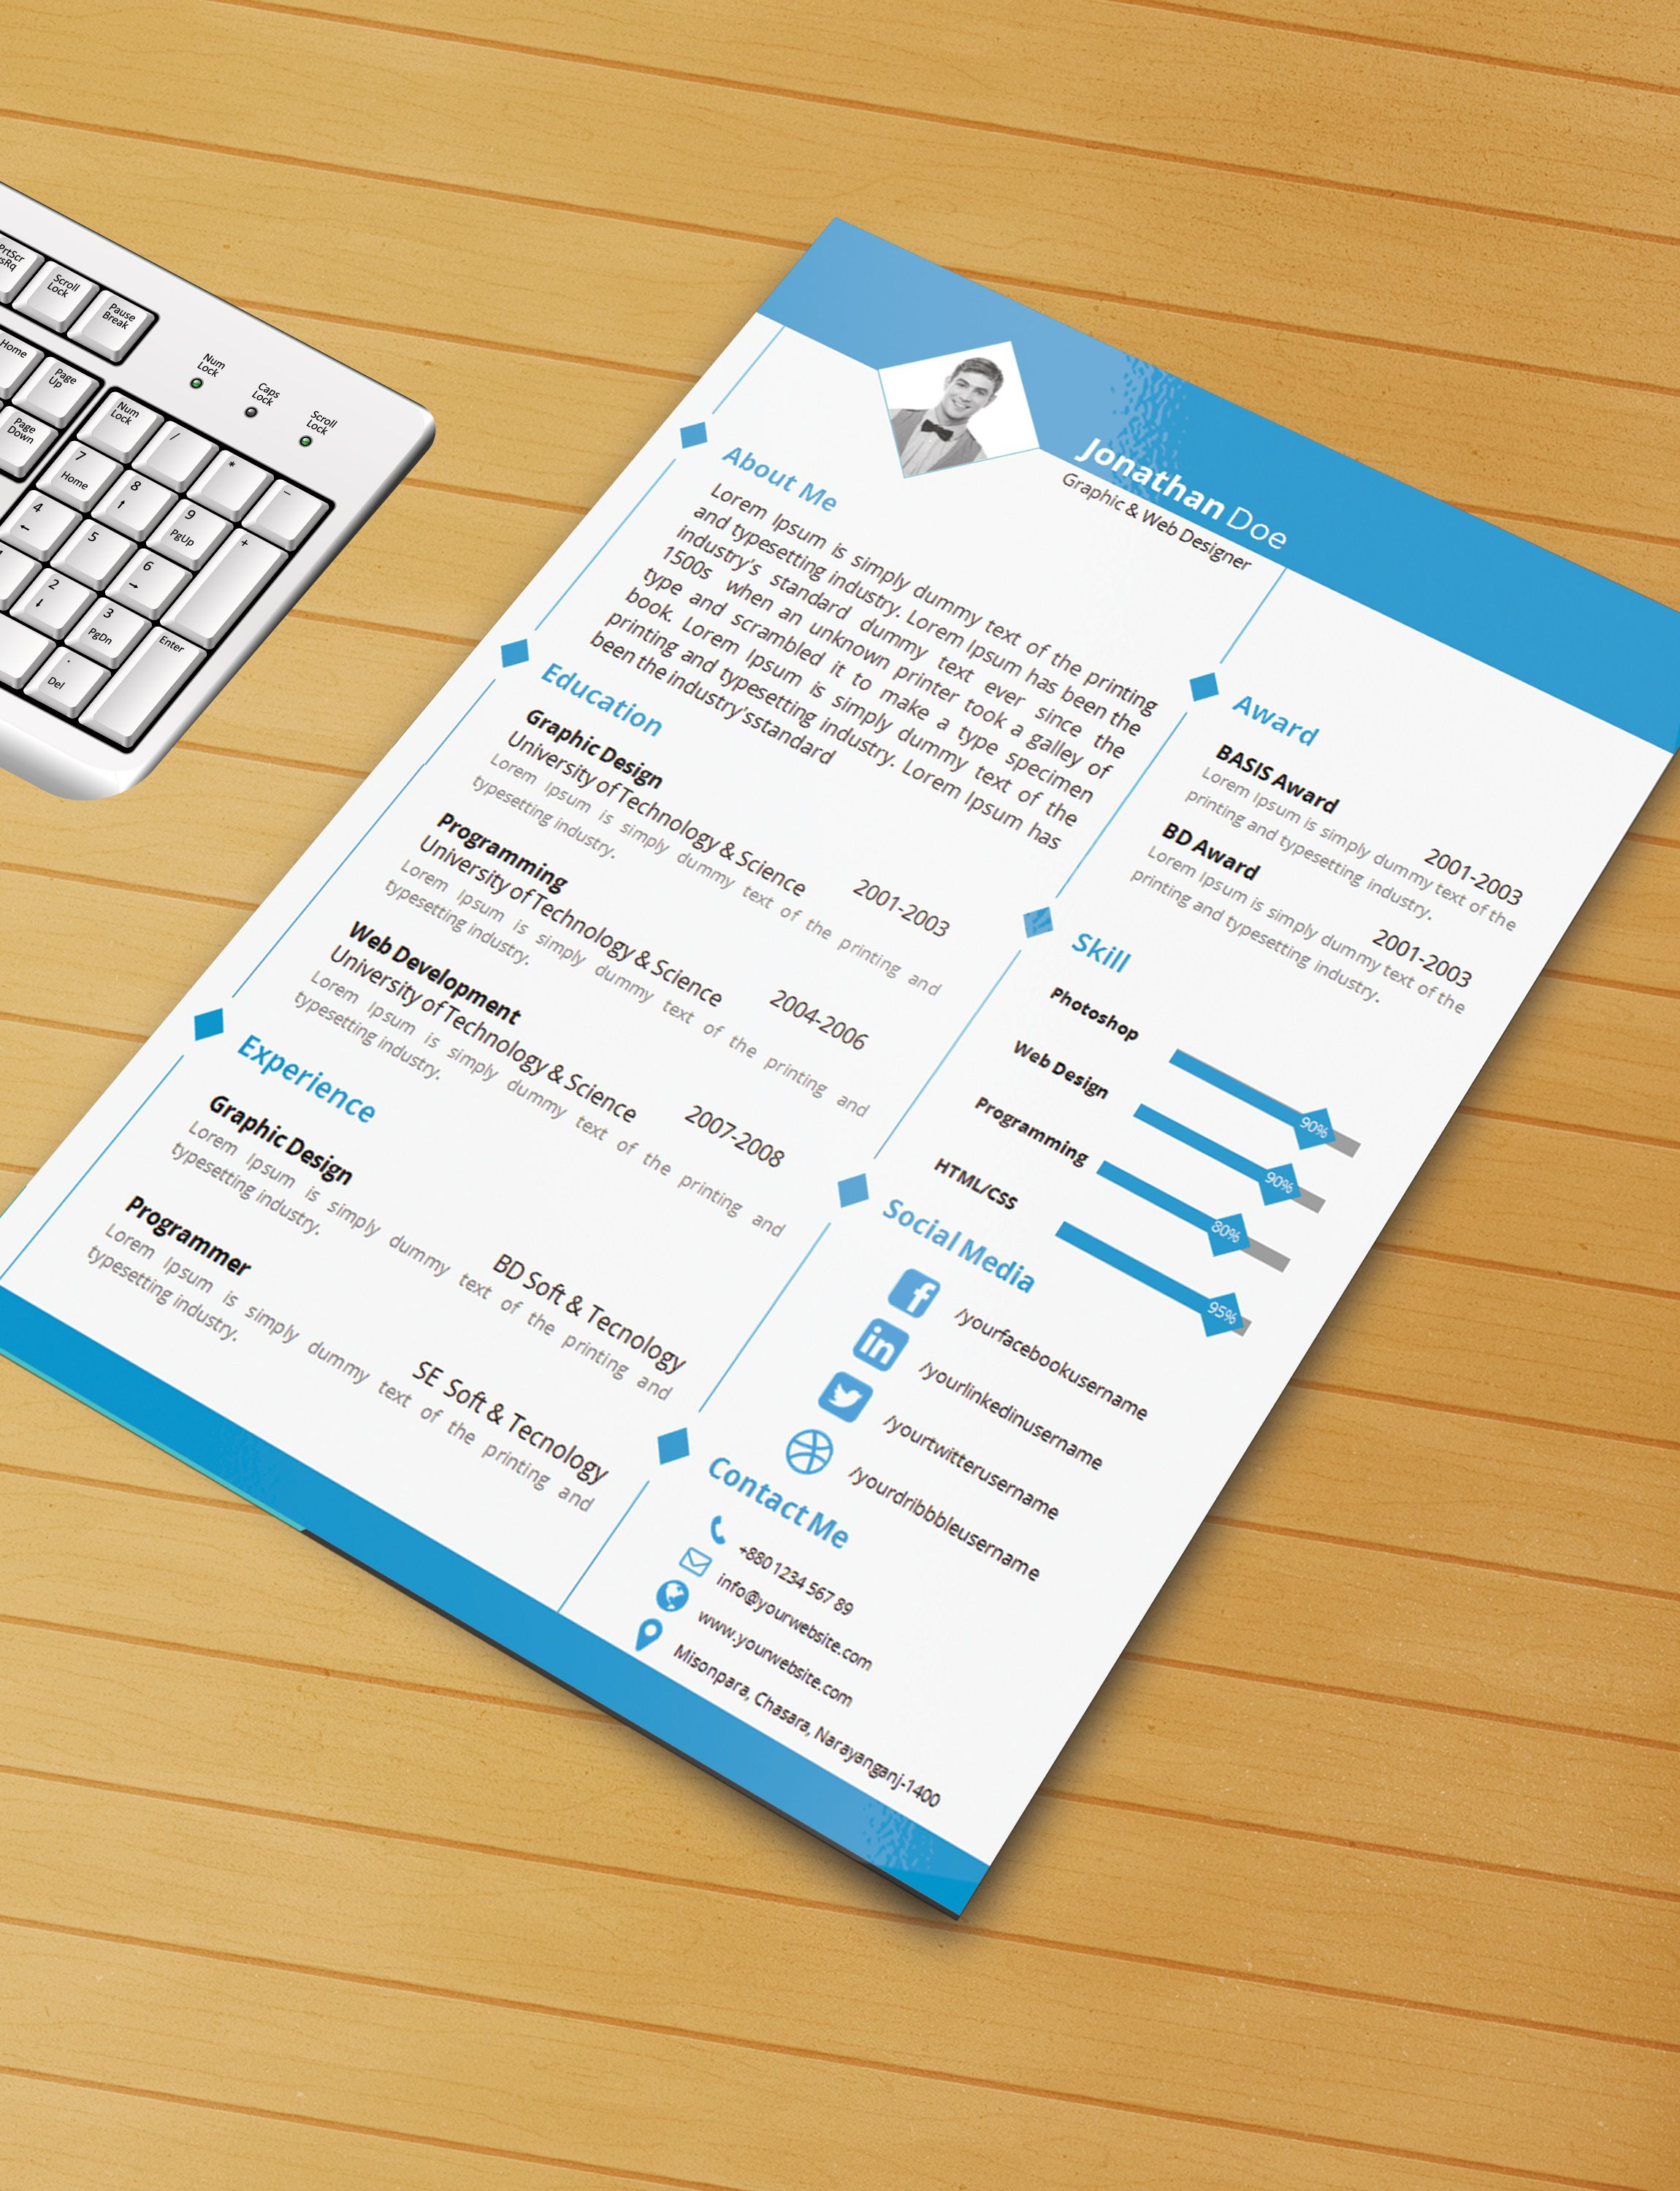 002 Frightening M Word Template Free Download Example  Microsoft Office Invoice Letterhead 2003 ResumeFull